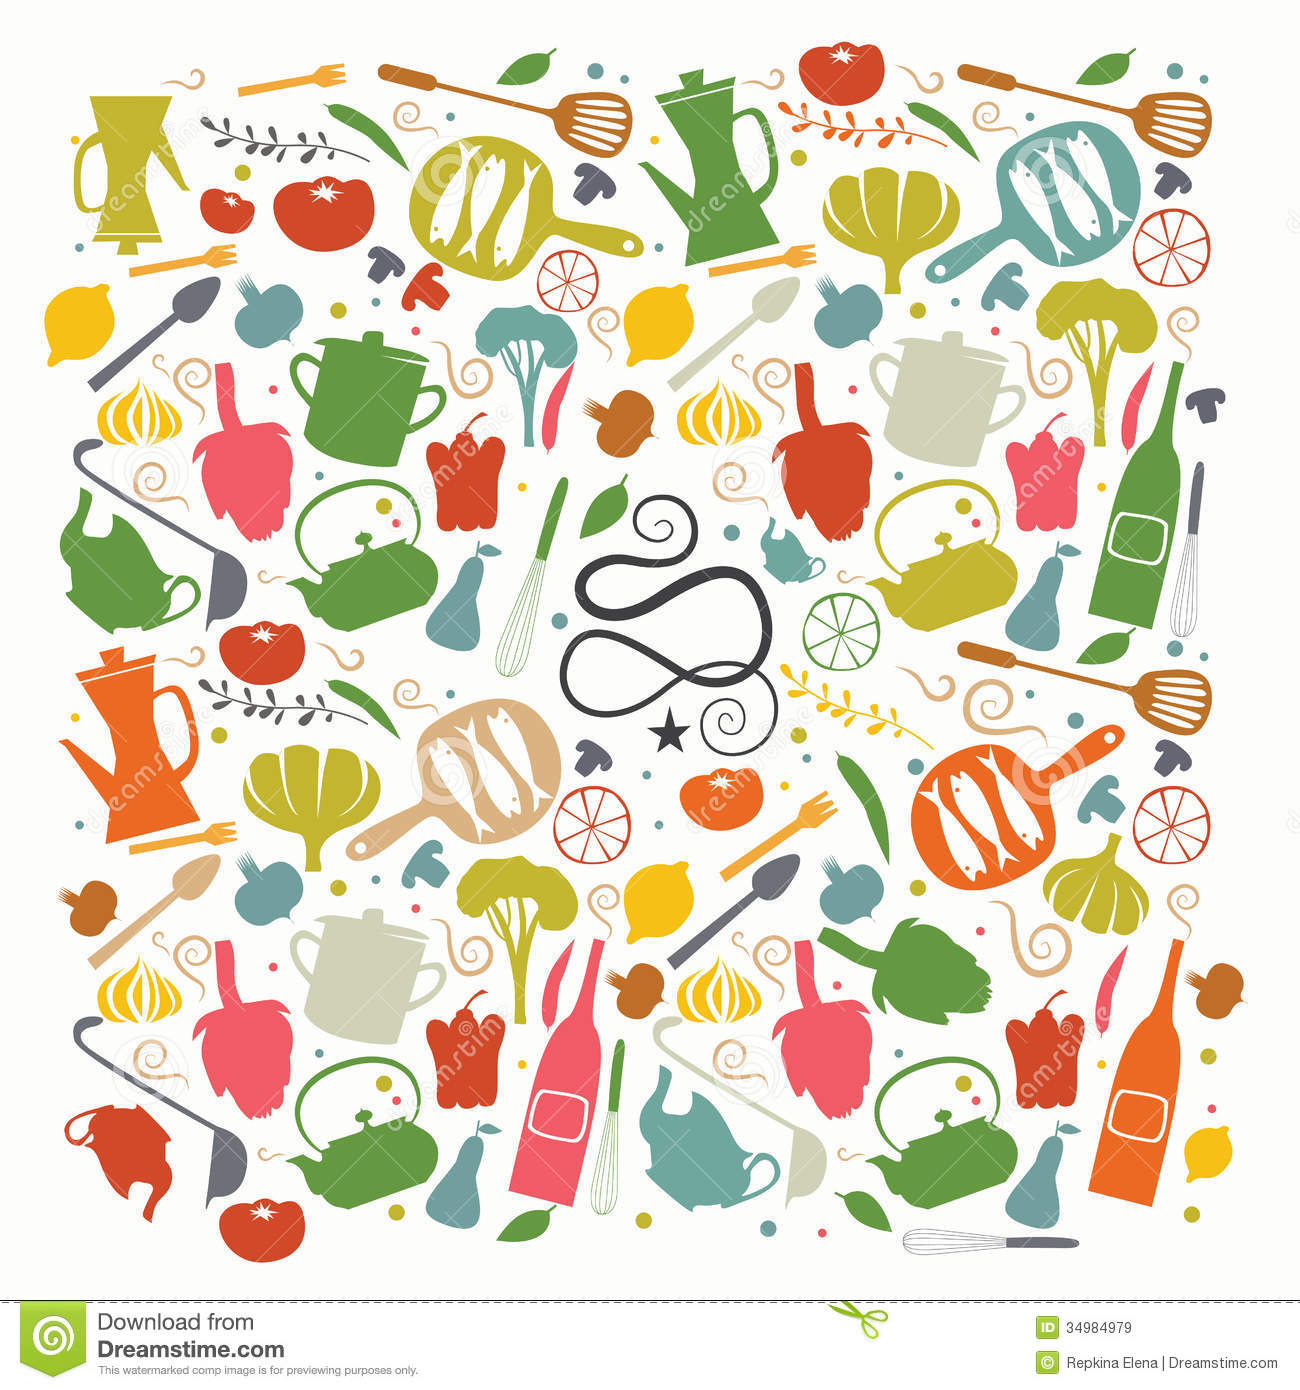 Cover clipart recipe book Cliparts Cookbook Clipart Cookbook Cover